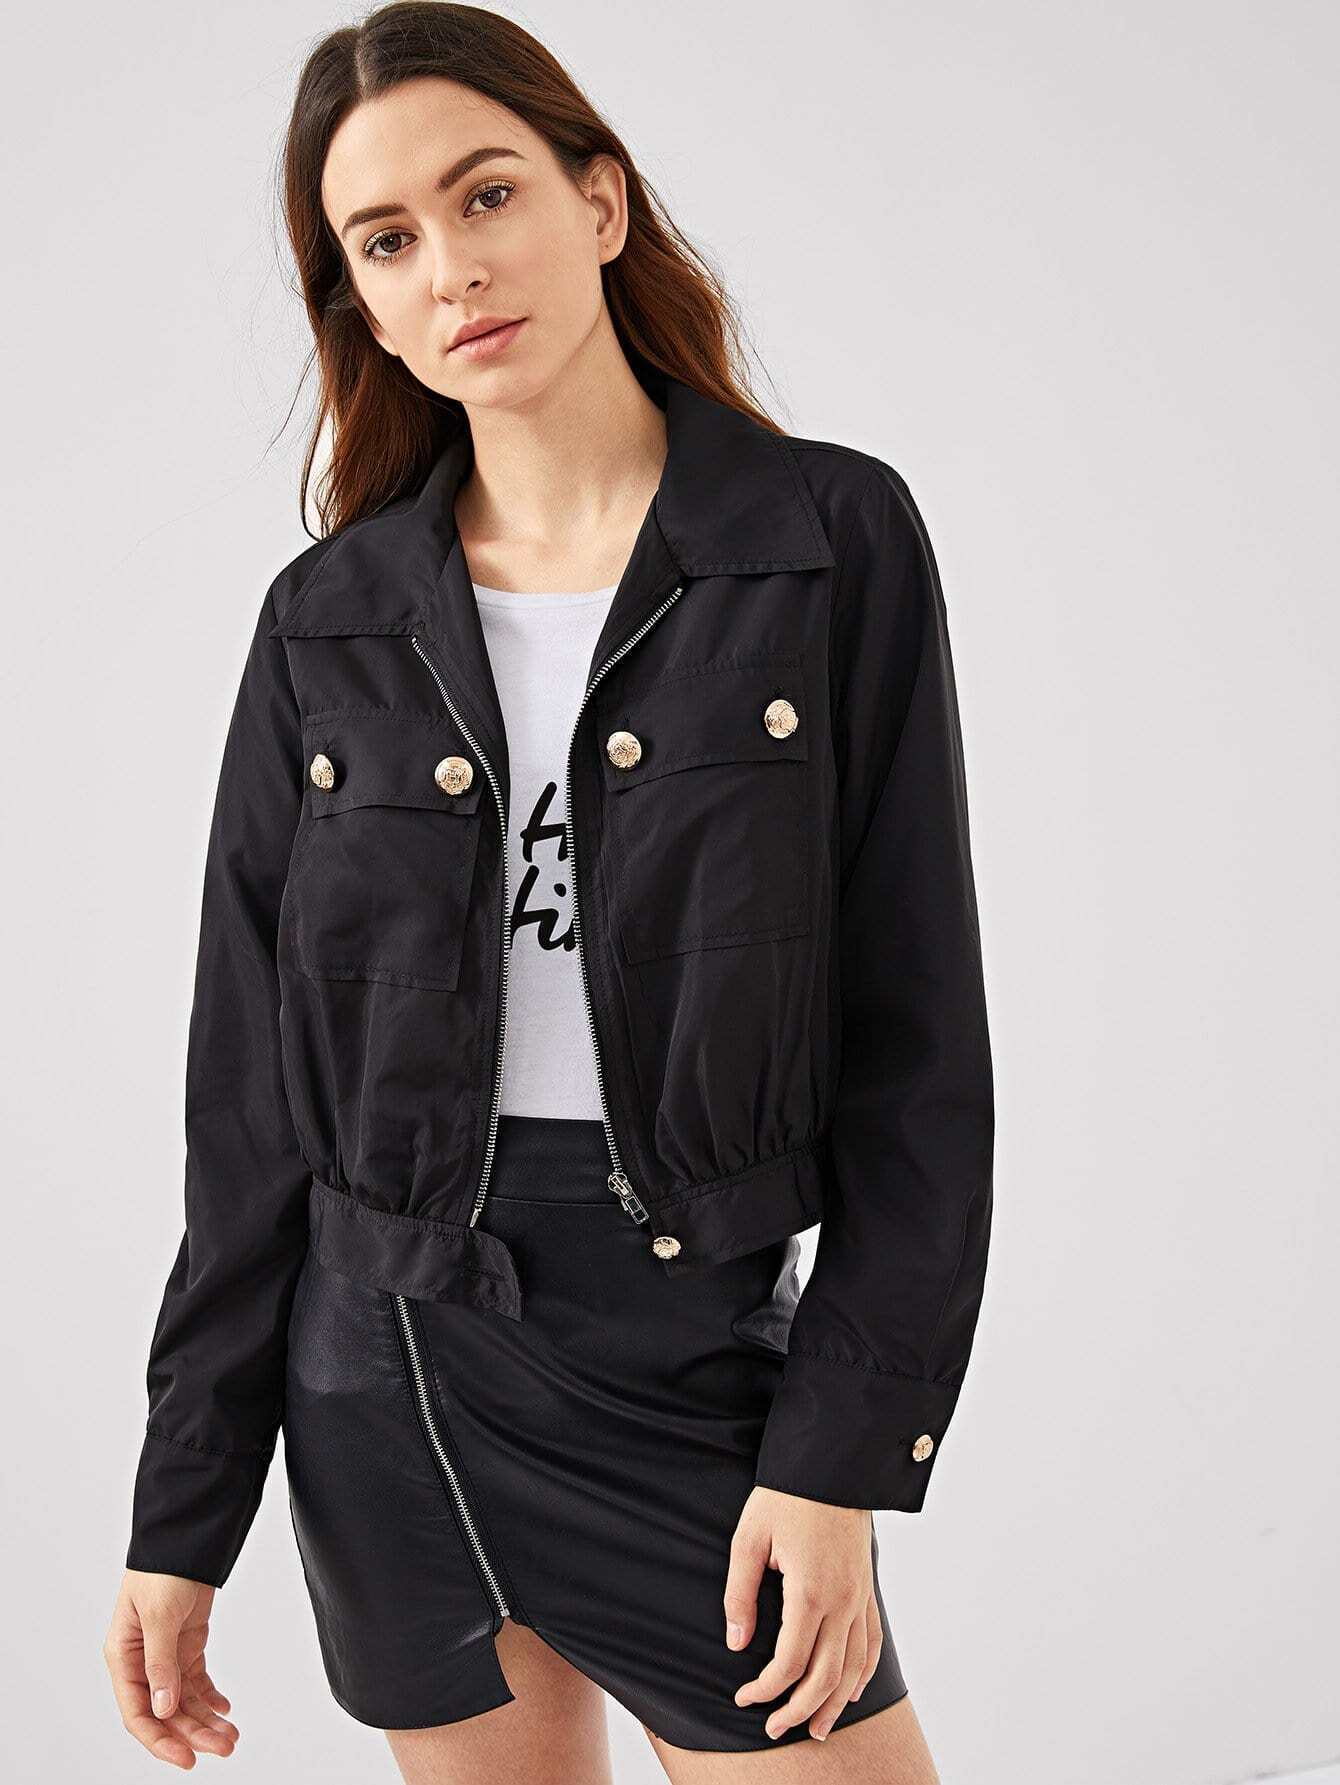 Button Detail Pocket Front Zip Up Jacket другие 11 11